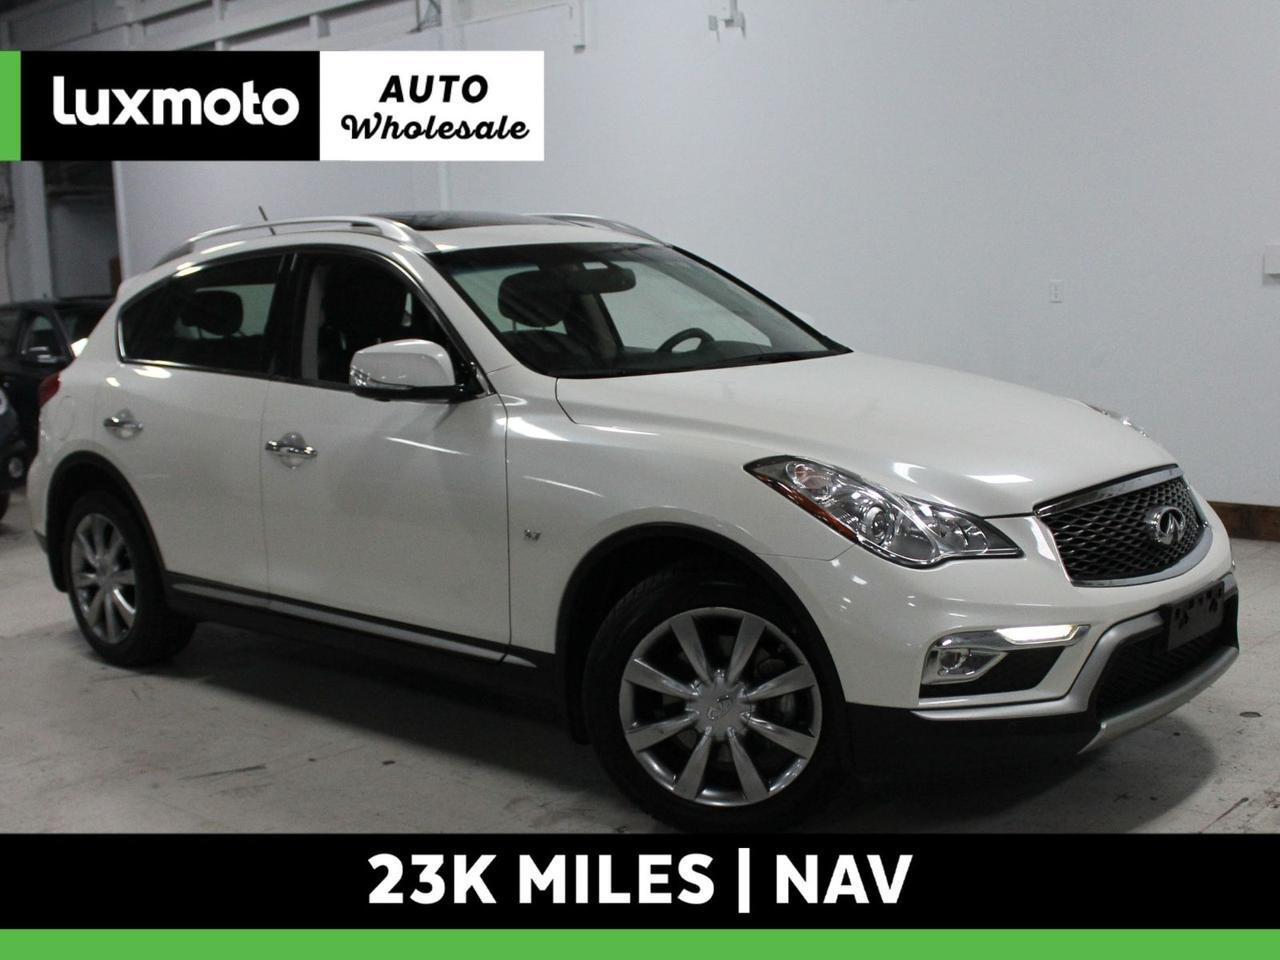 2017 INFINITI QX50 AWD 23k Miles Nav Back-Up Camera Heated Seats Portland OR